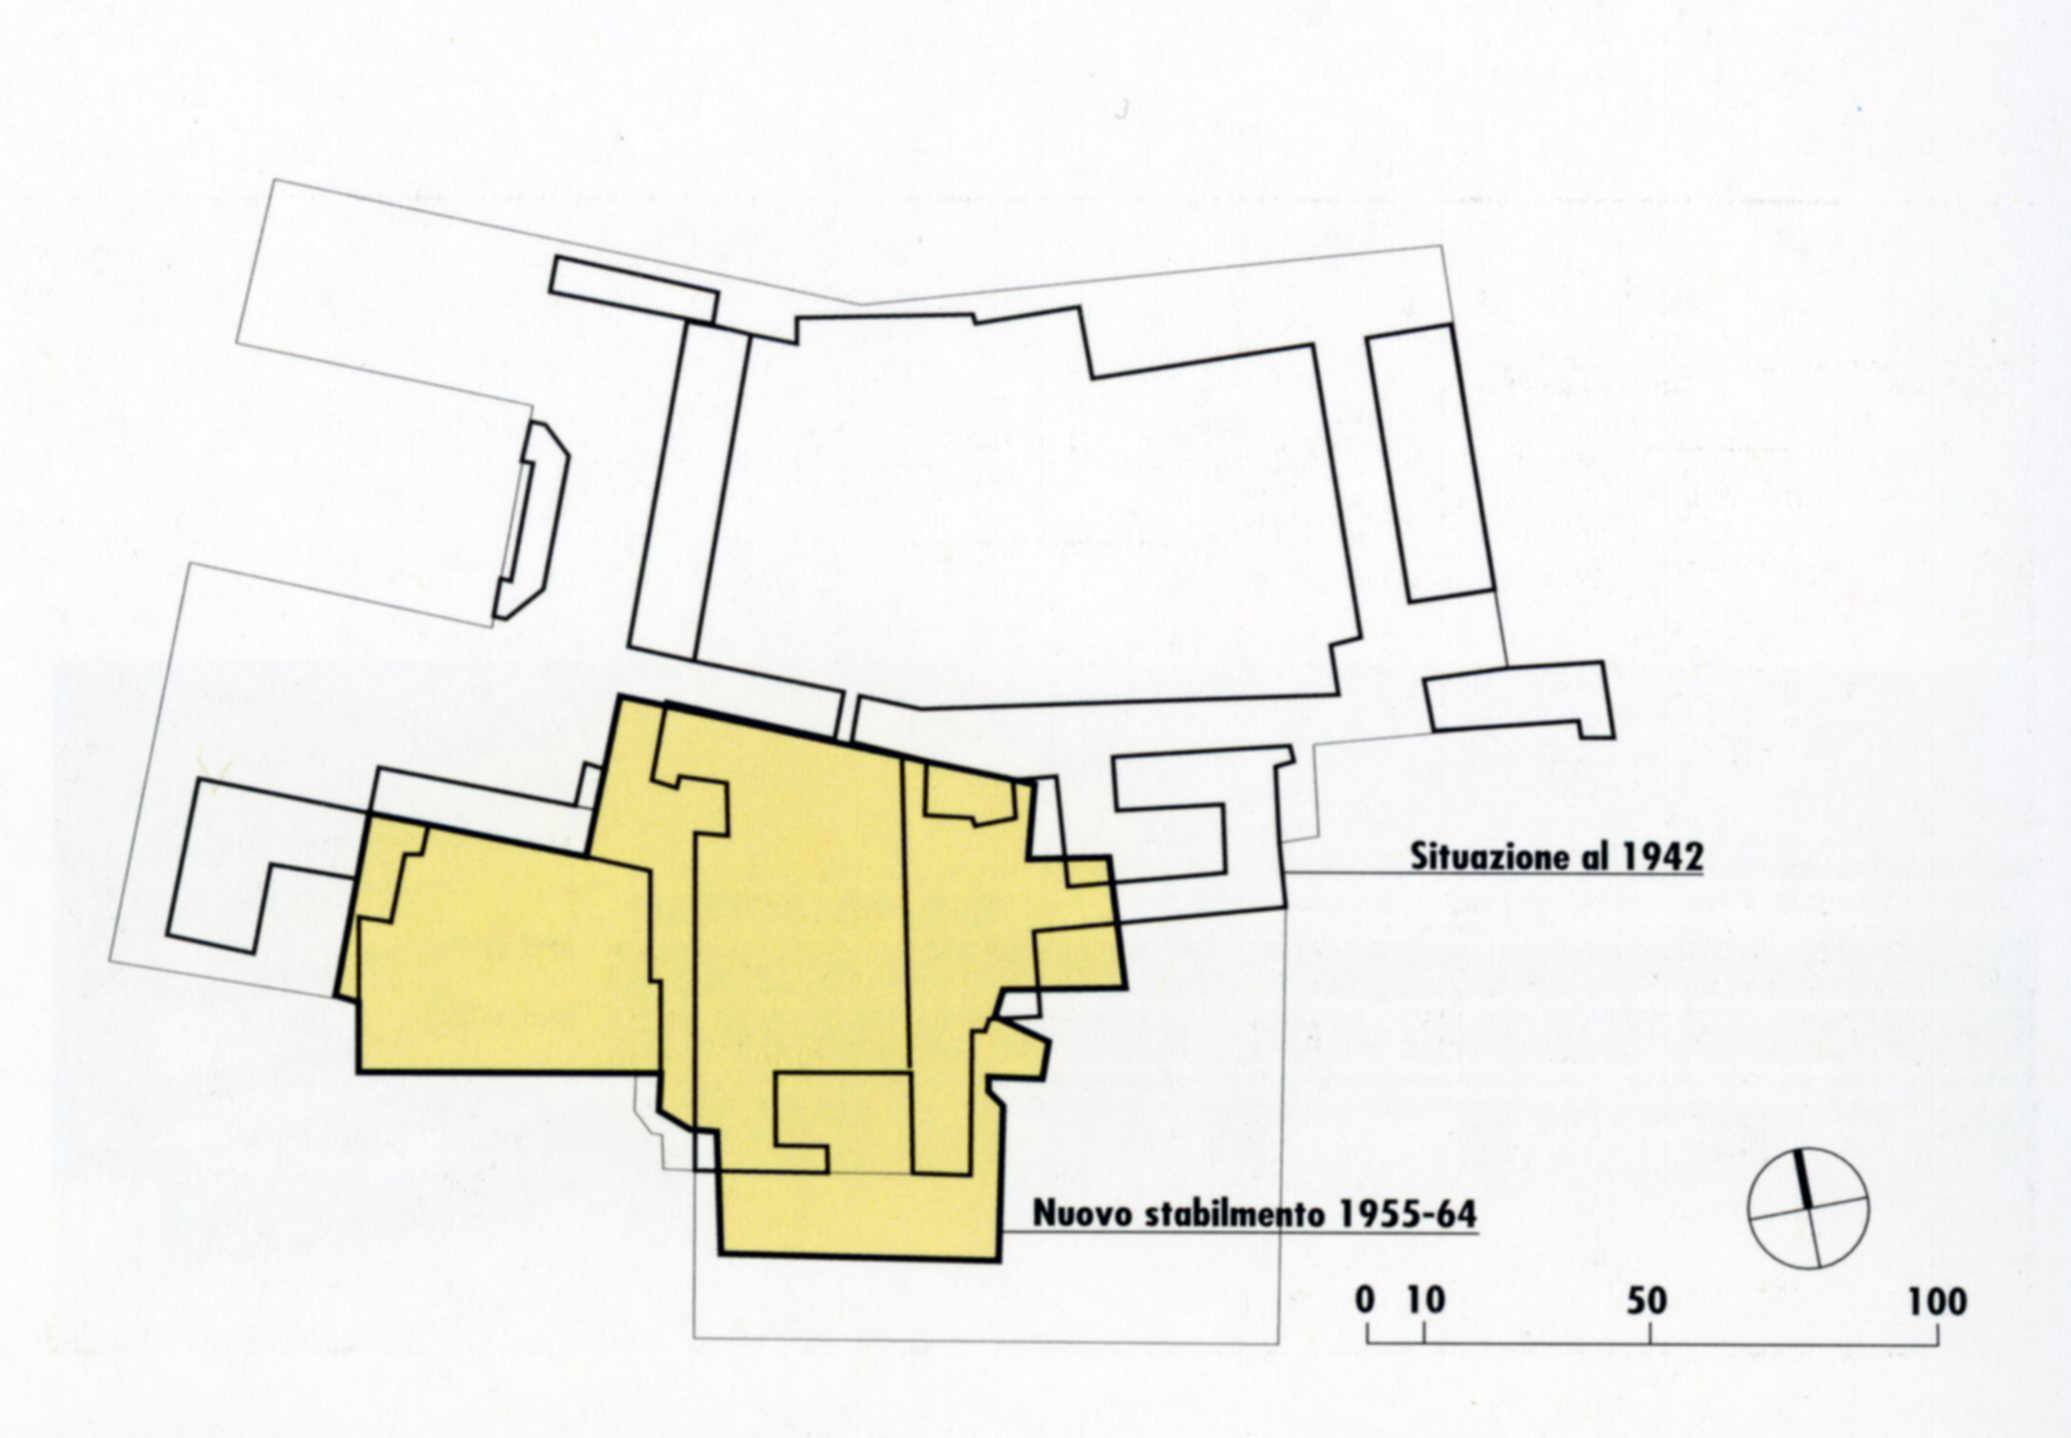 Design plan with the earlier buildings and the intervention made in the years 1955-1964.